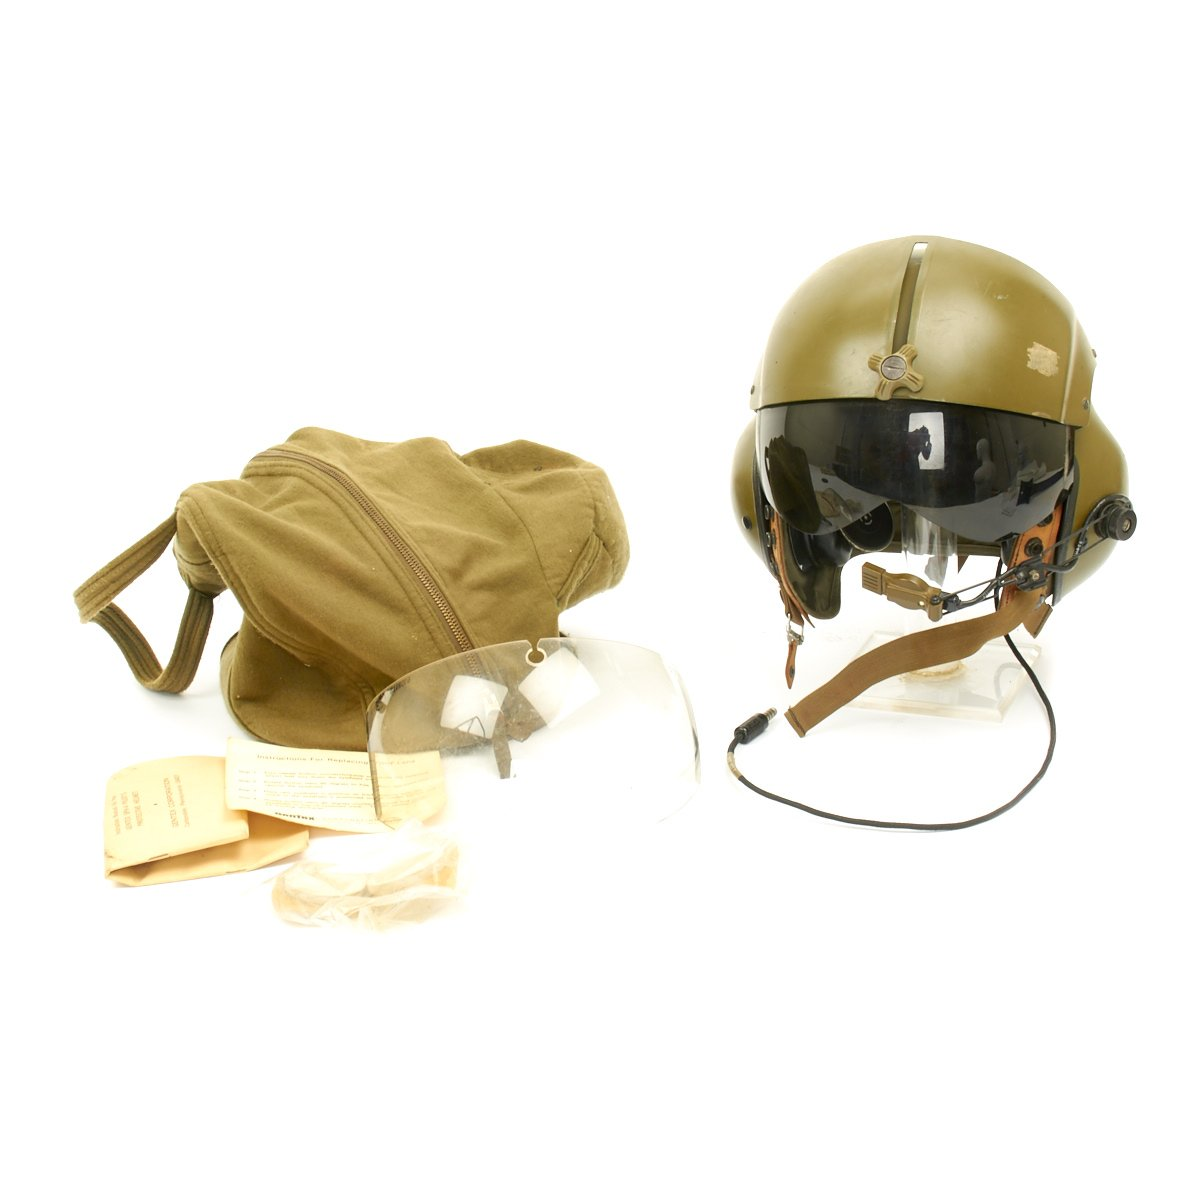 Prev · U.S. Vietnam War Helicopter Pilot Gentex SPH-4 Helmet with Felt Bag.  Tap to expand 59f925ed84ac7